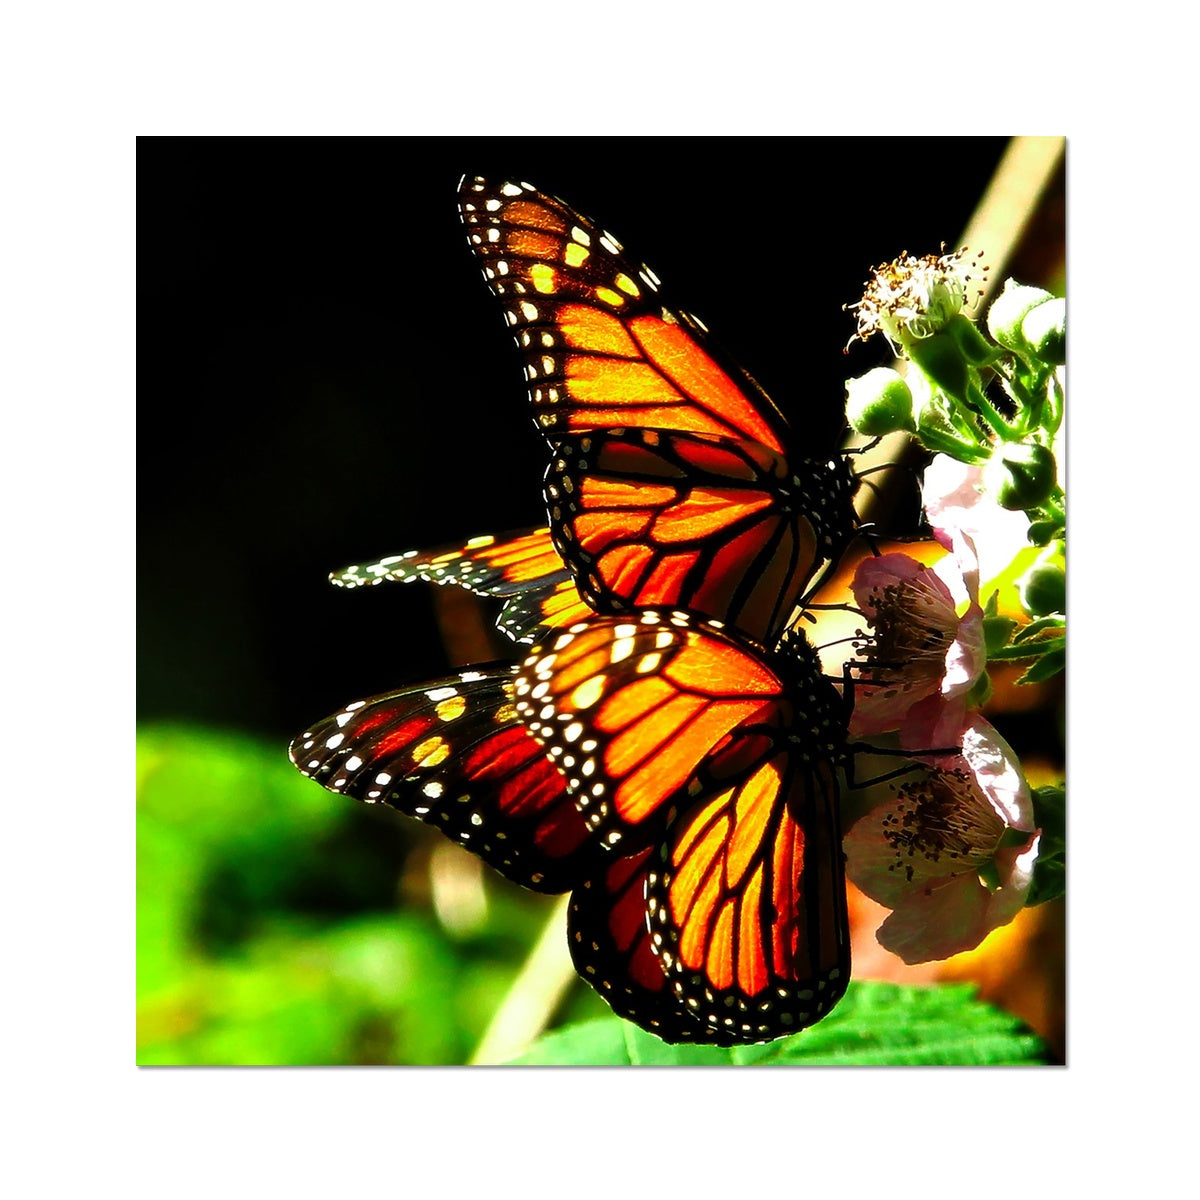 Butterfly Joy - Square - Photo Art Print